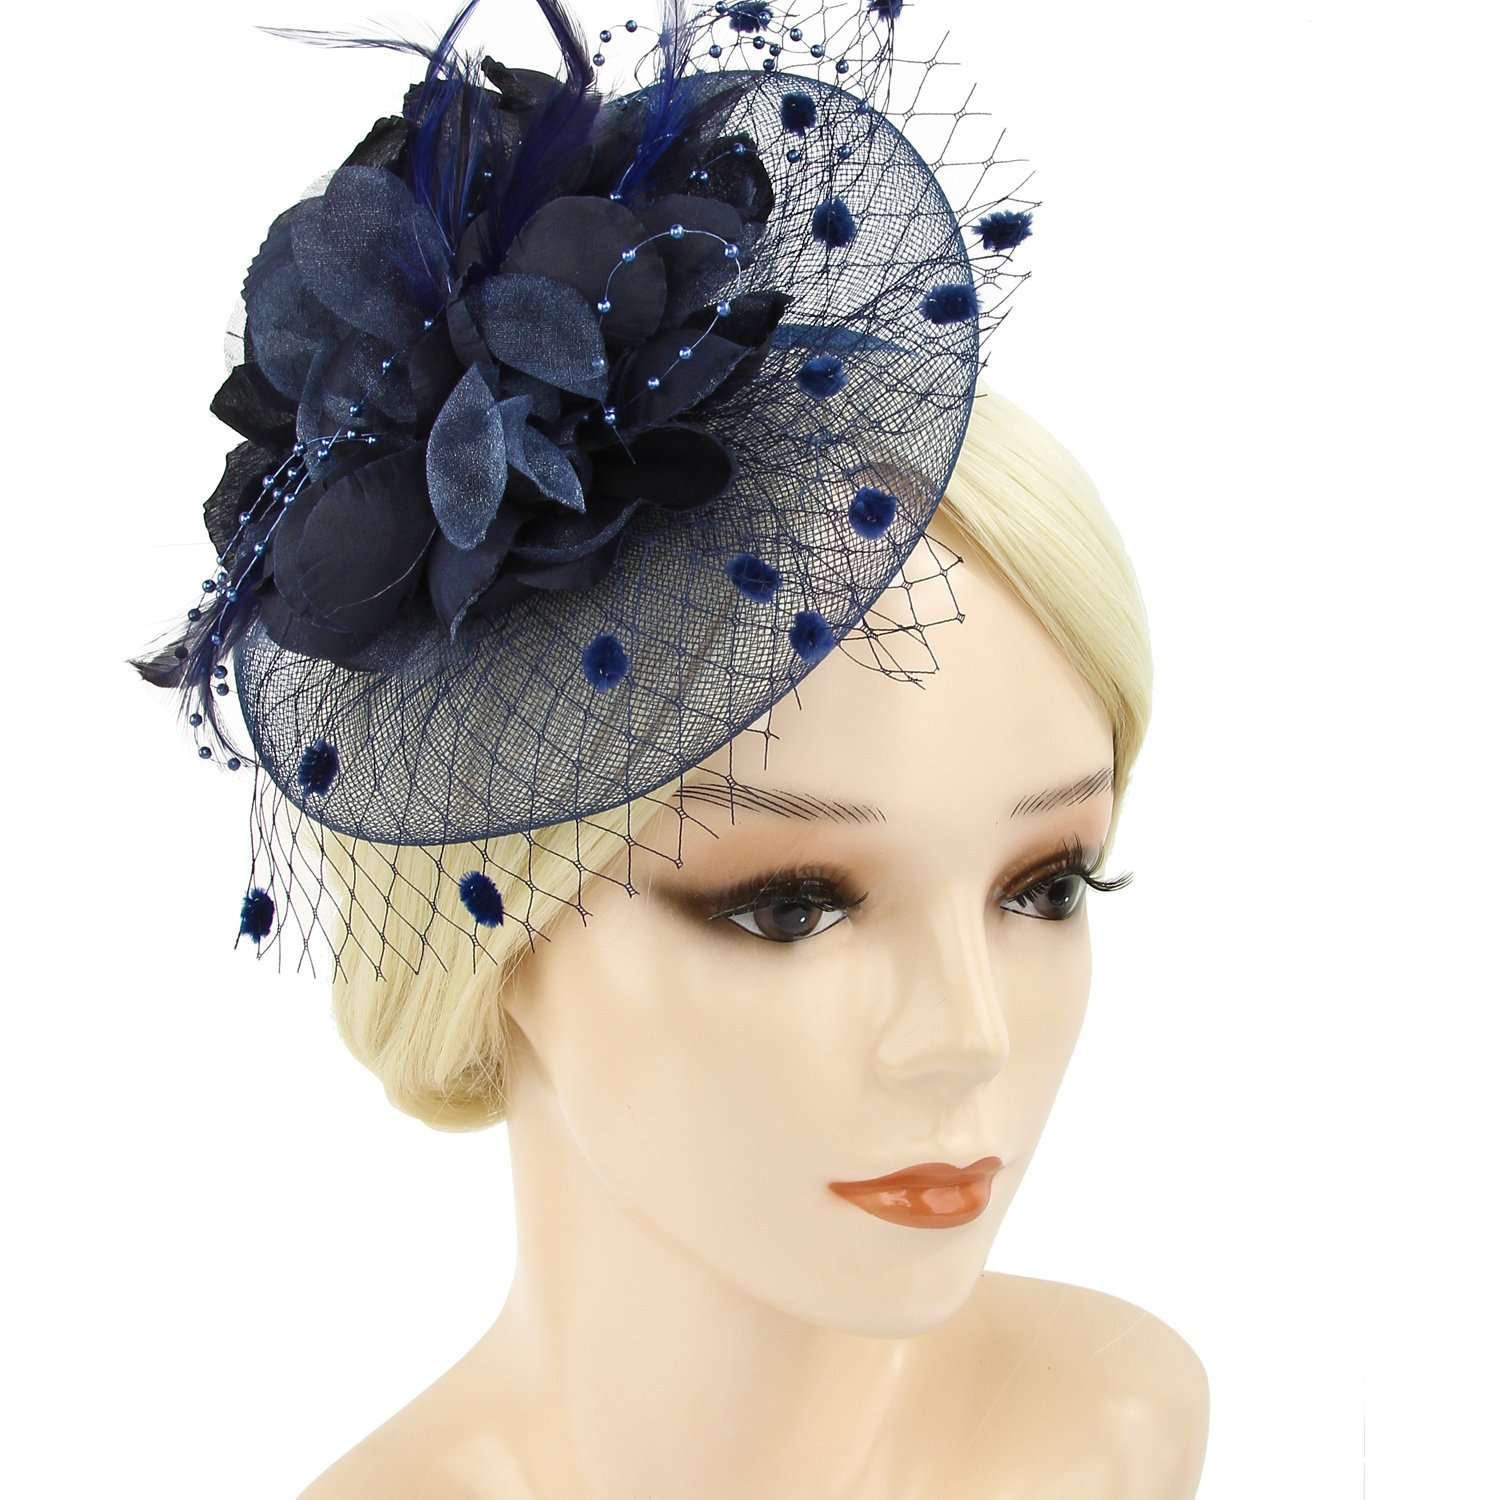 Acecharming Fascinators for Women, Feather Sinamay Fascinators with Headbands Tea Party Pillbox Hat Flower Derby Hats(Navy Blue-04)